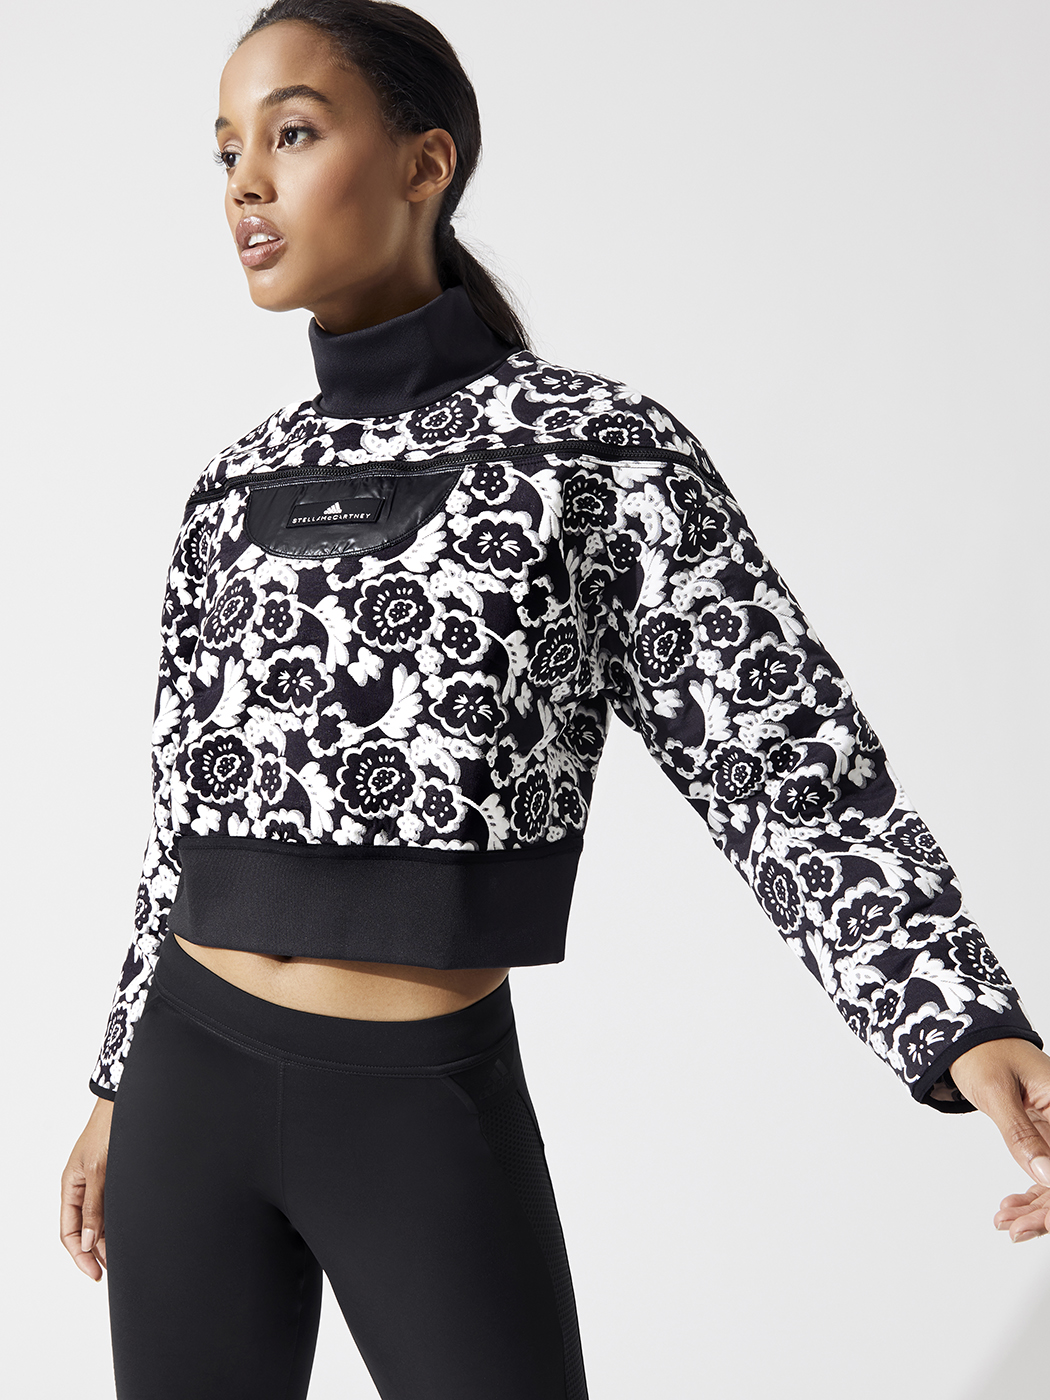 02b571fe5817b Run Sweater Sweatshirts in Black/white by Adidas By Stella Mccartney from  Carbon38